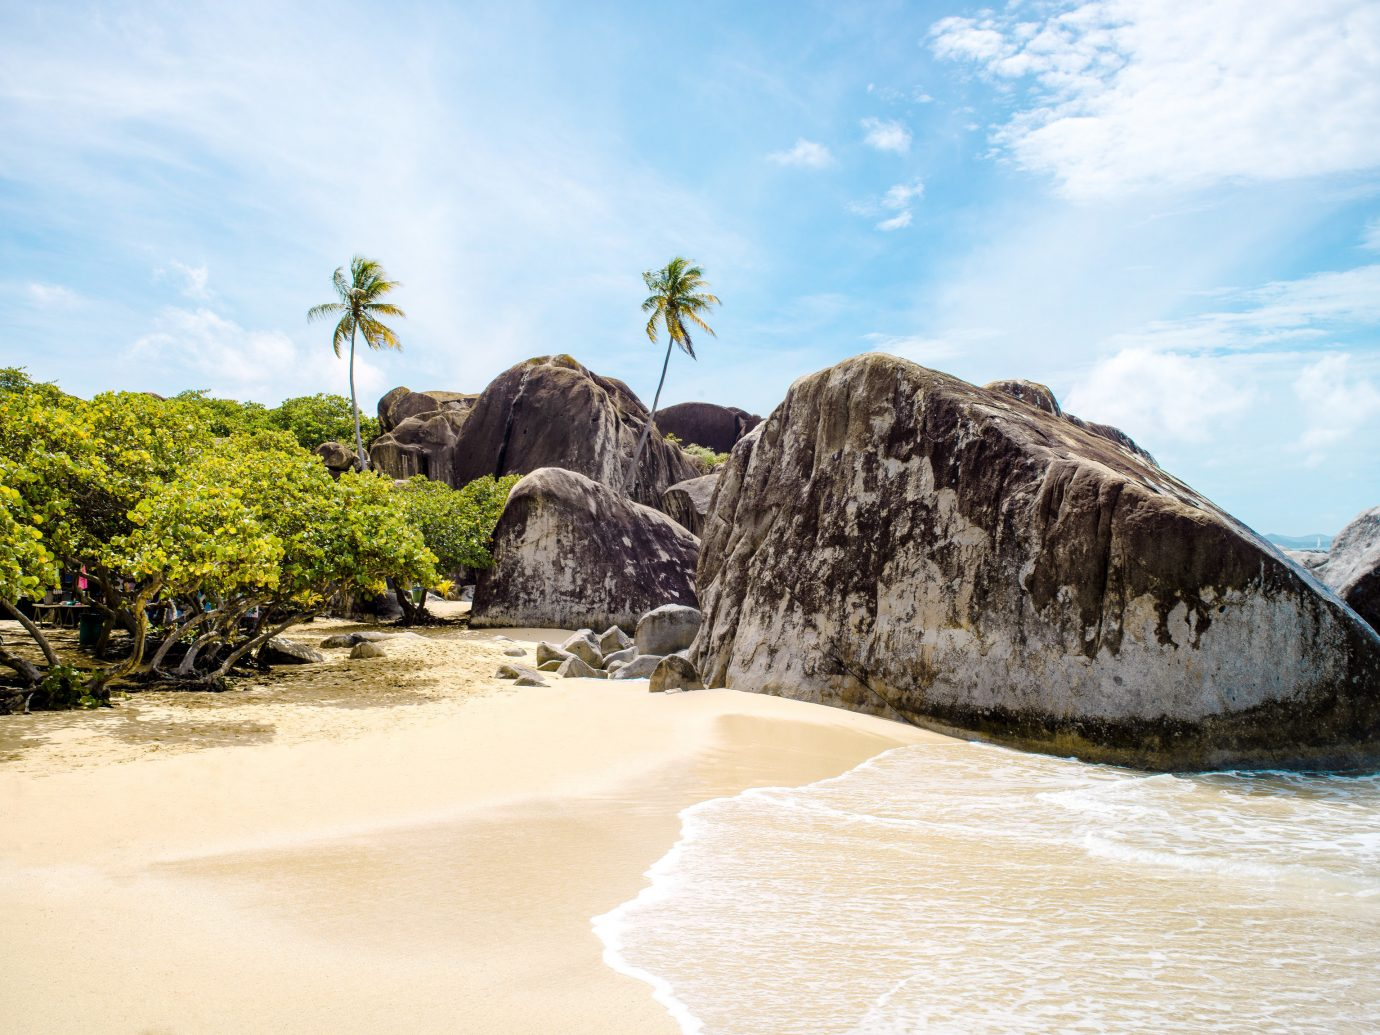 Trip Ideas sky outdoor body of water Nature Beach water tropics Coast shore coastal and oceanic landforms arecales Sea palm tree tree rock Ocean vacation tourism sand bay caribbean landscape